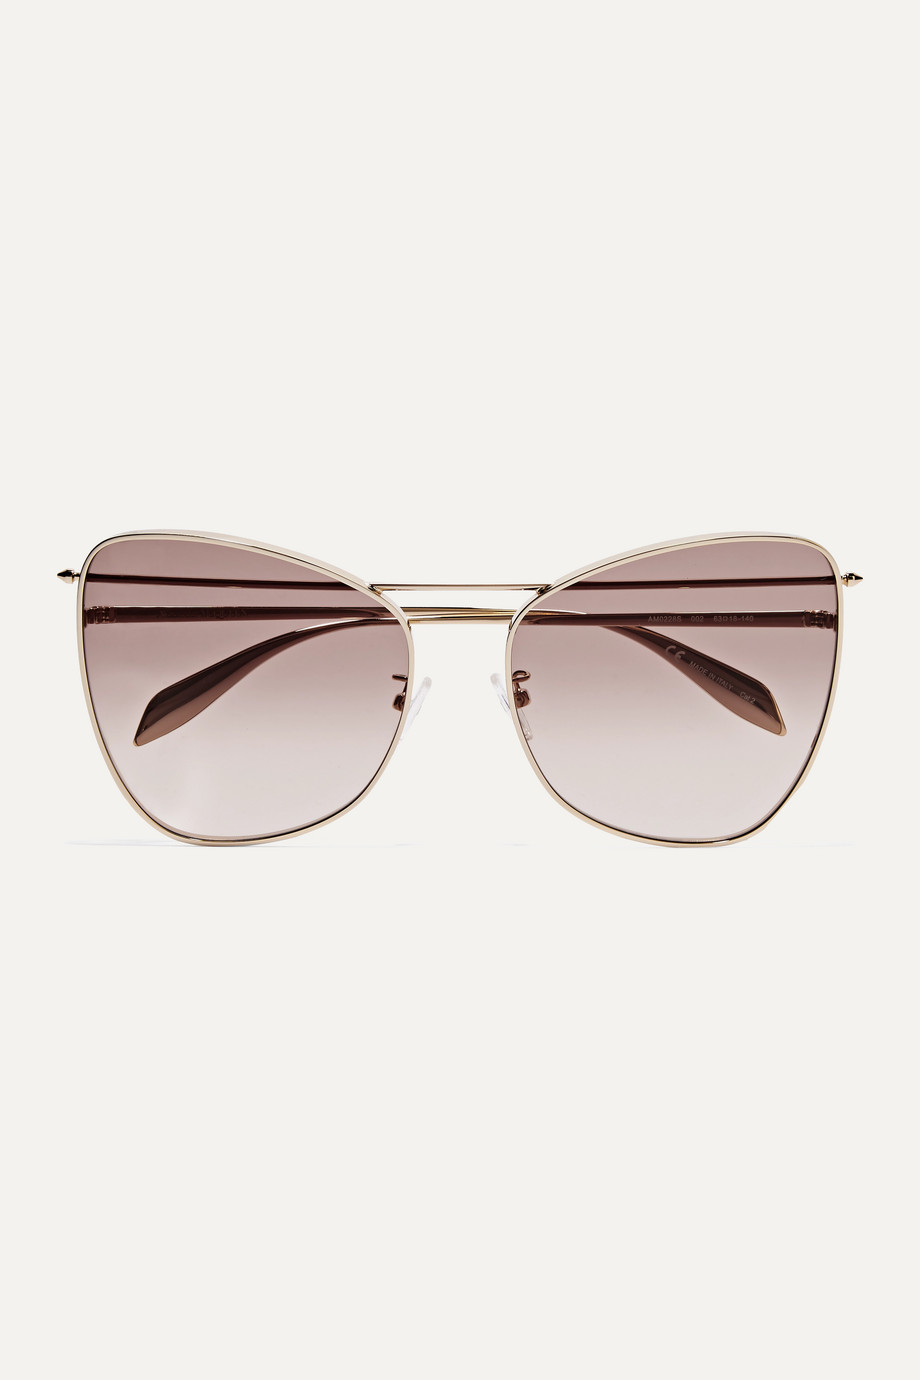 Alexander McQueen Piercing cat-eye gold-tone sunglasses